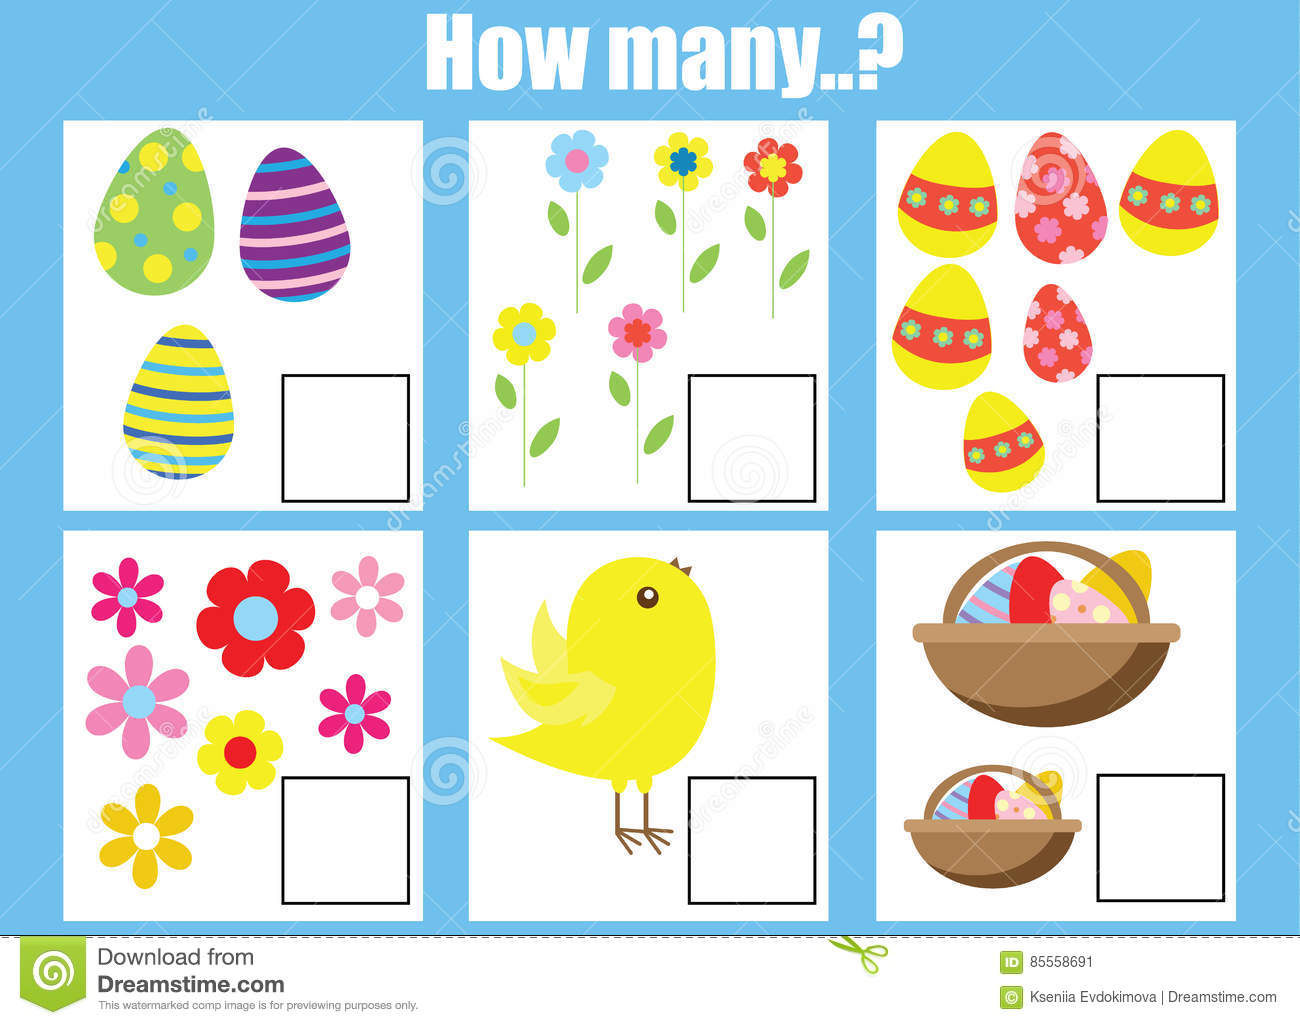 Counting Educational Children Game Kids Activity Worksheet How Many Objects Task Stock